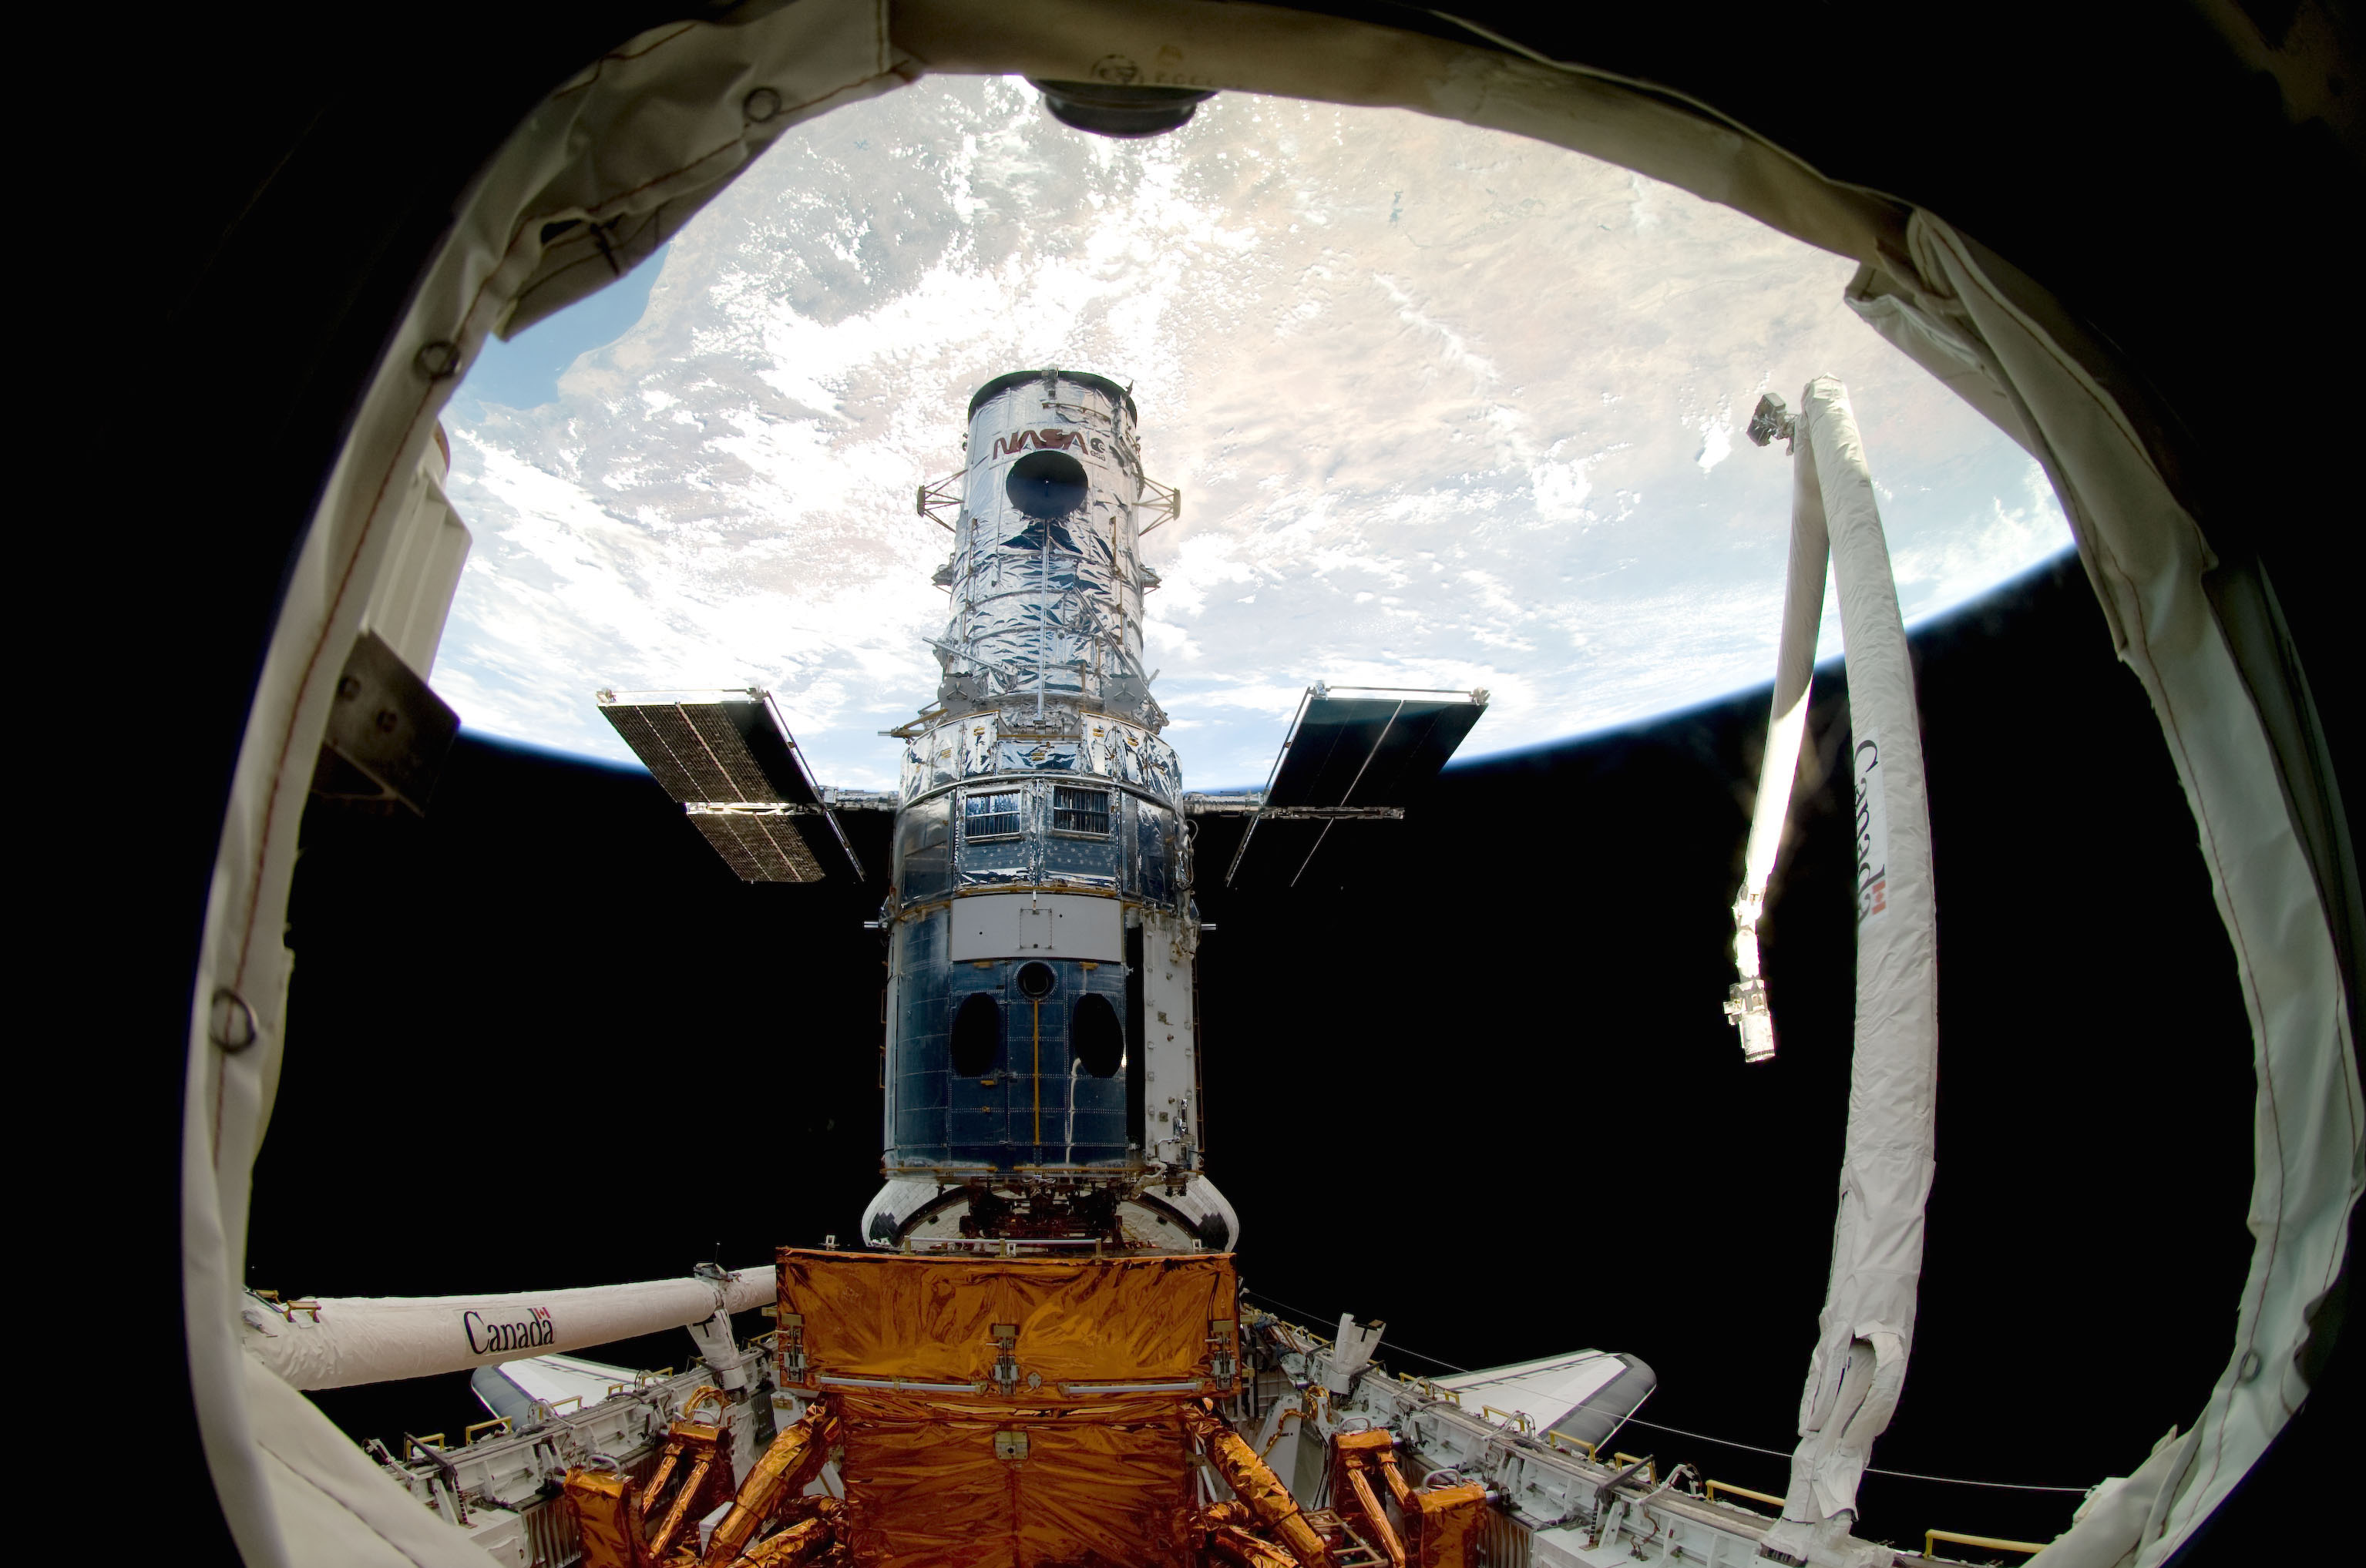 space shuttle atlantis hubble - photo #27